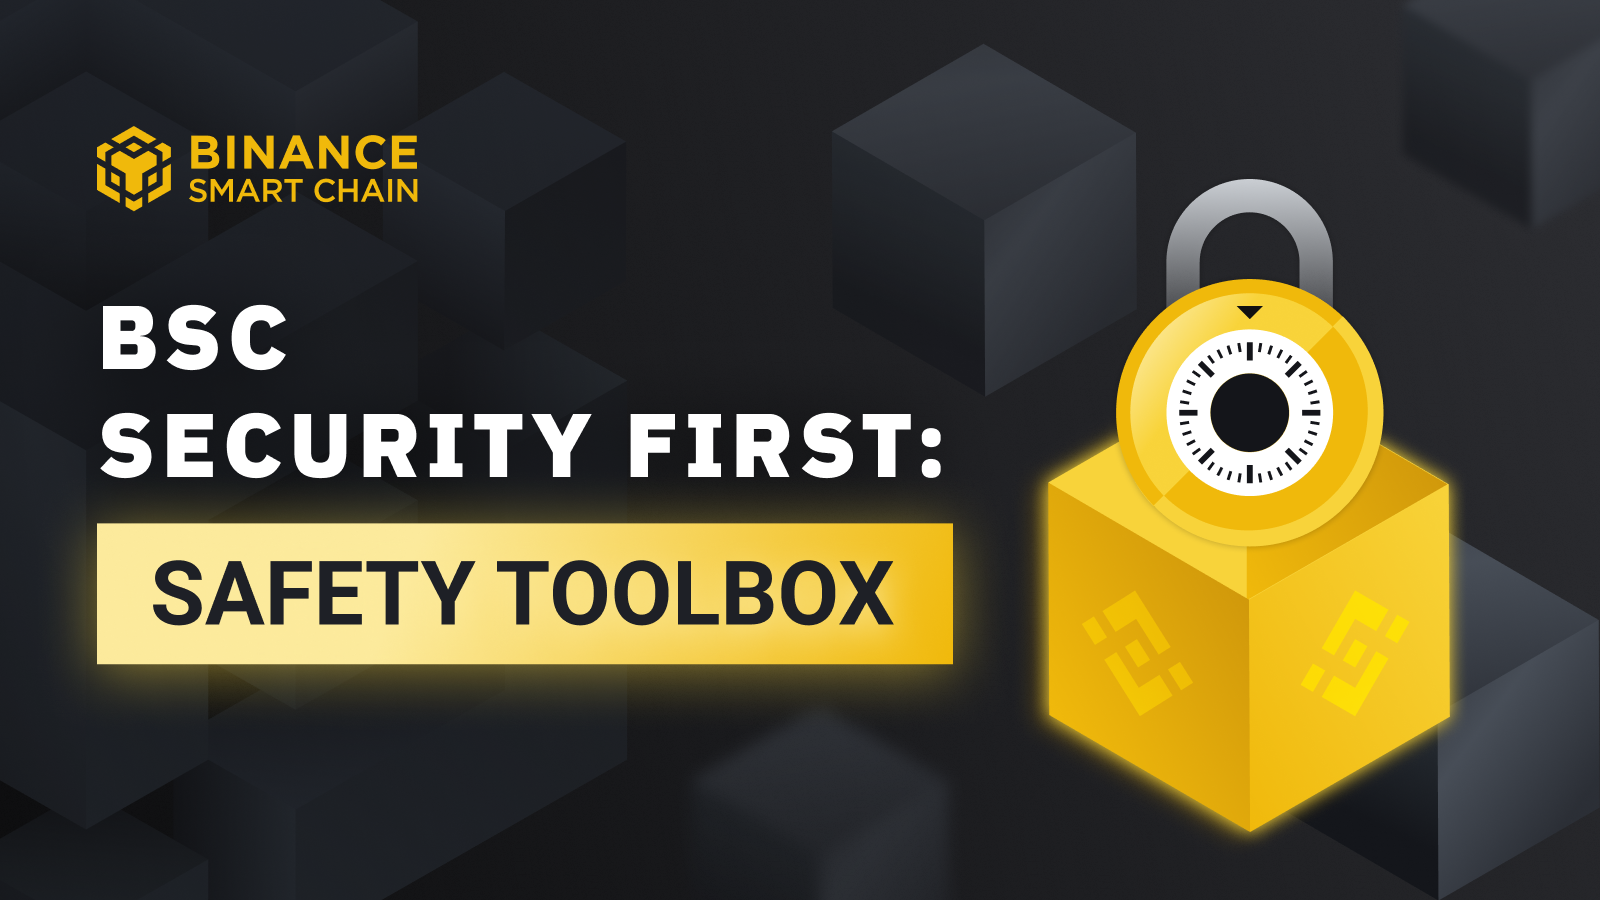 BSC Security First: Safety Toolbox